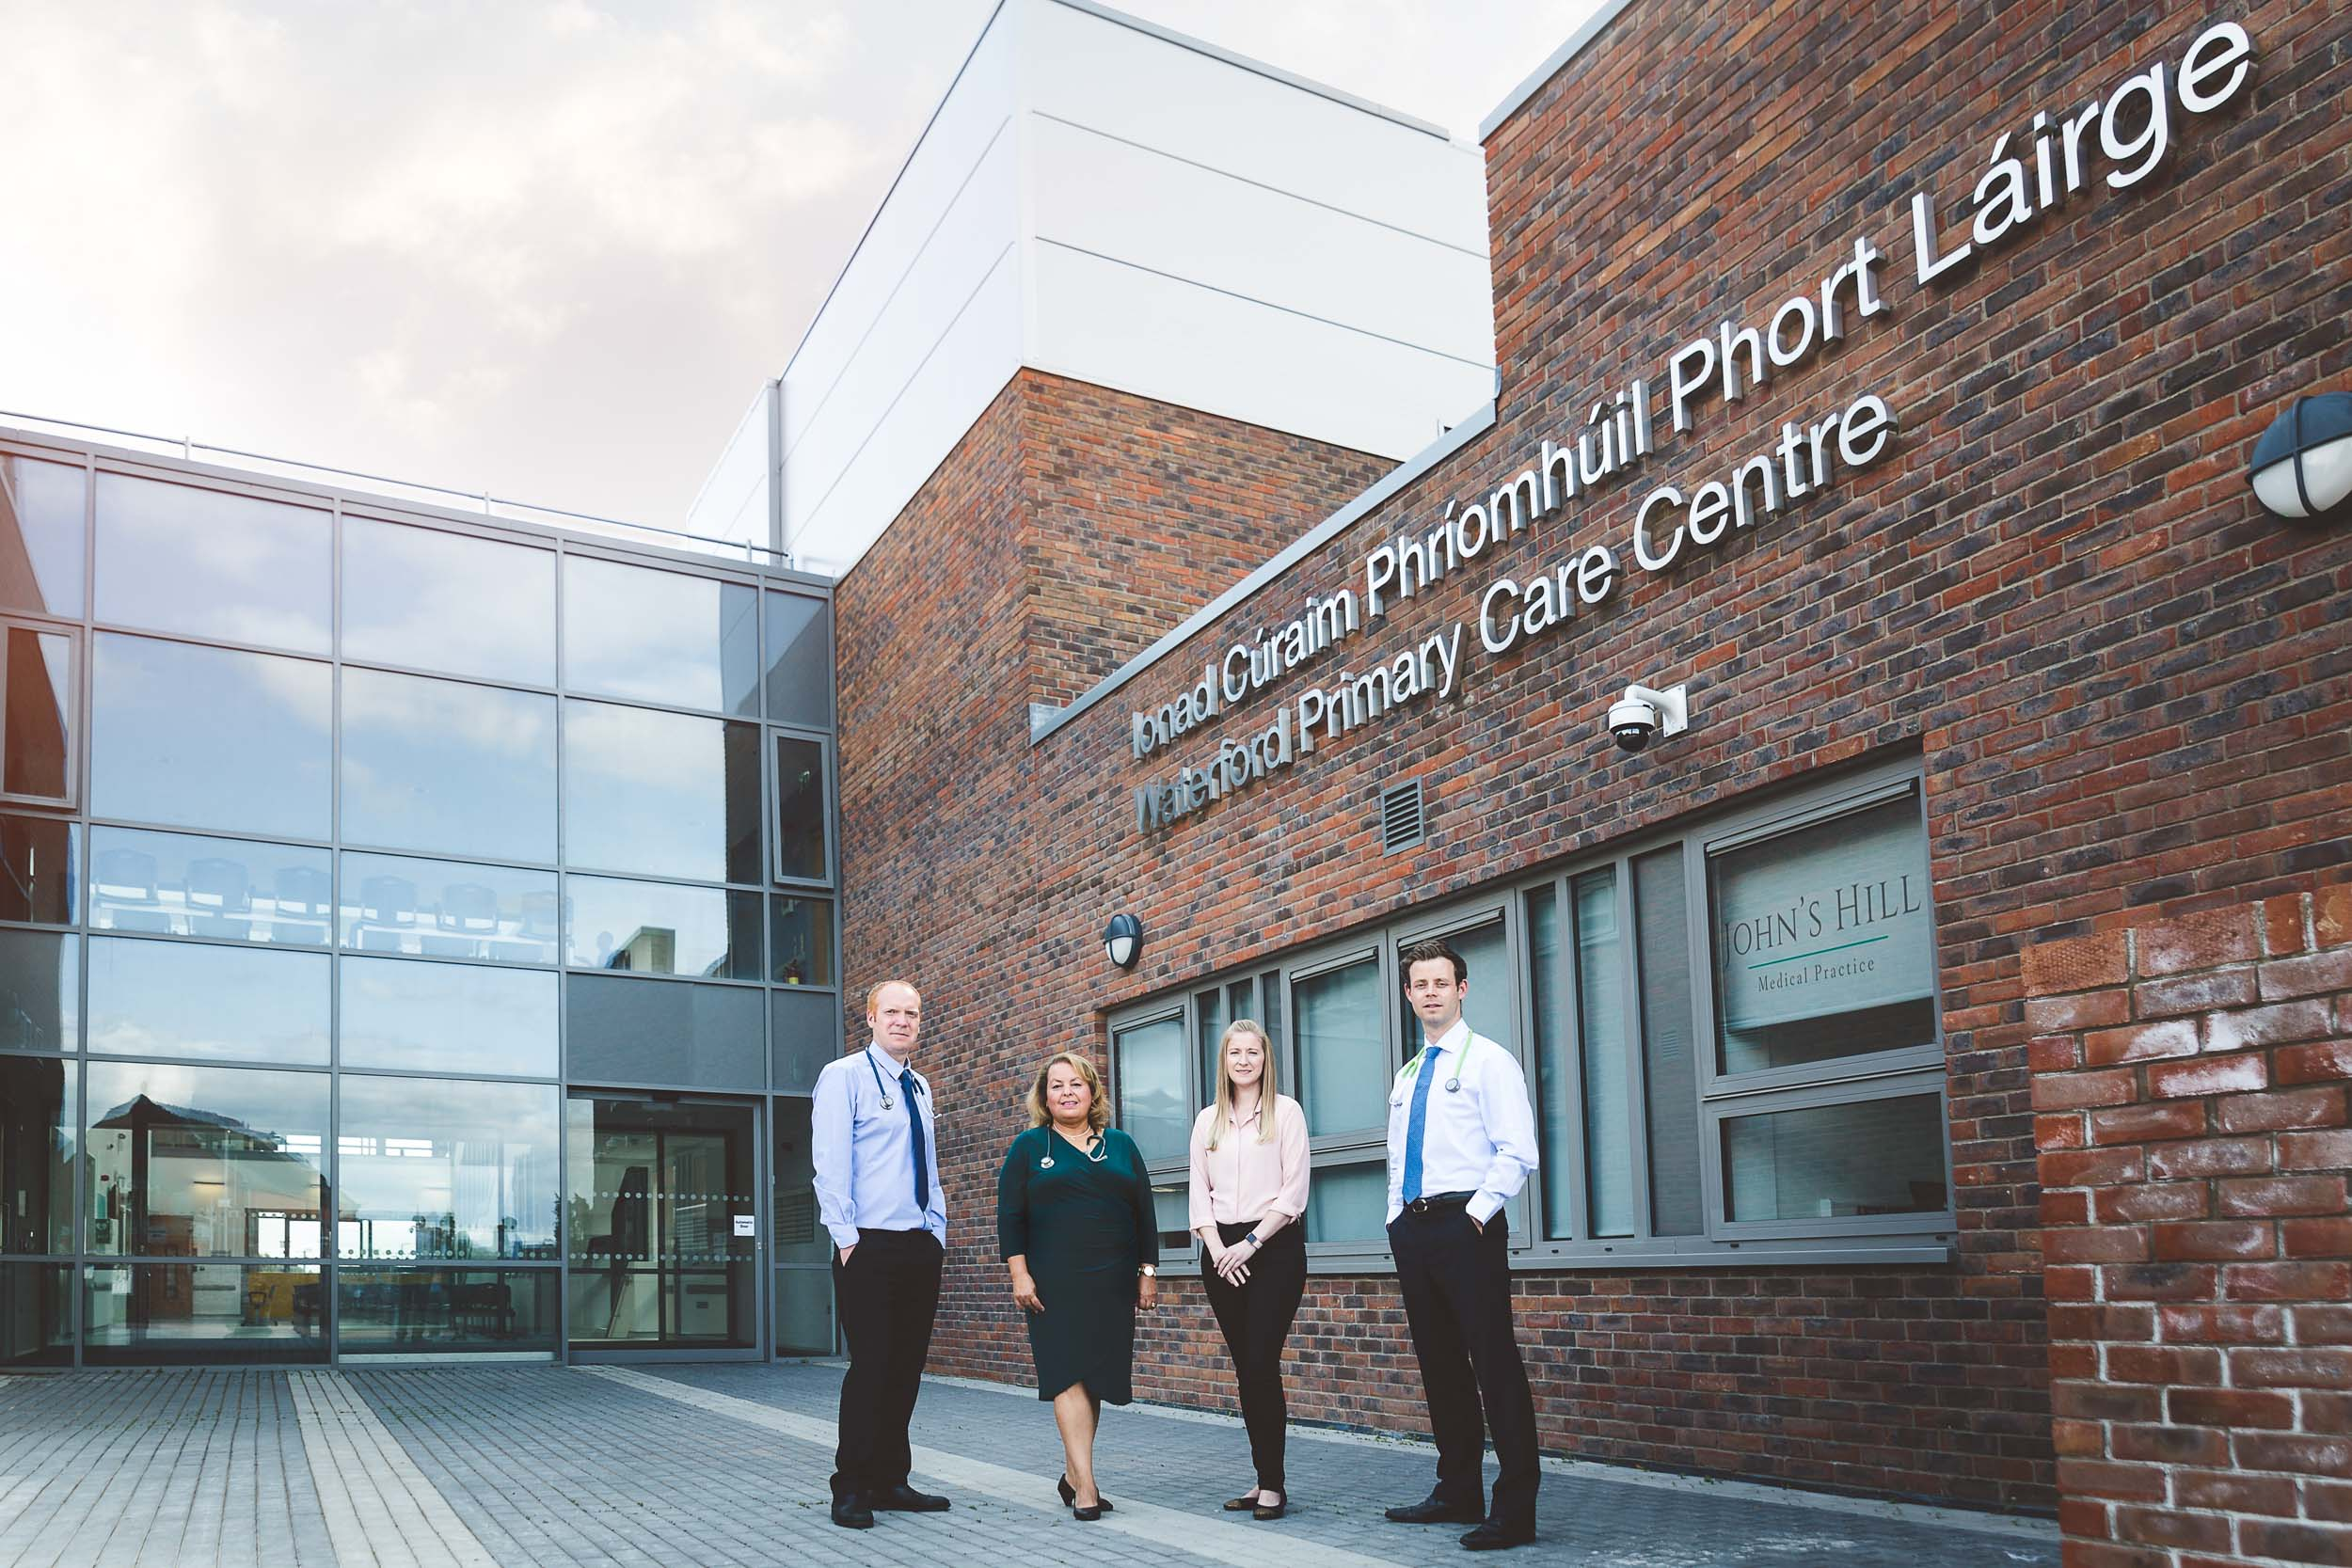 Outside the John's Hill Medical Practice Dr Paul Campbell Dr Hebat Seiam Nurse Aoife and Dr Paul O'Hara